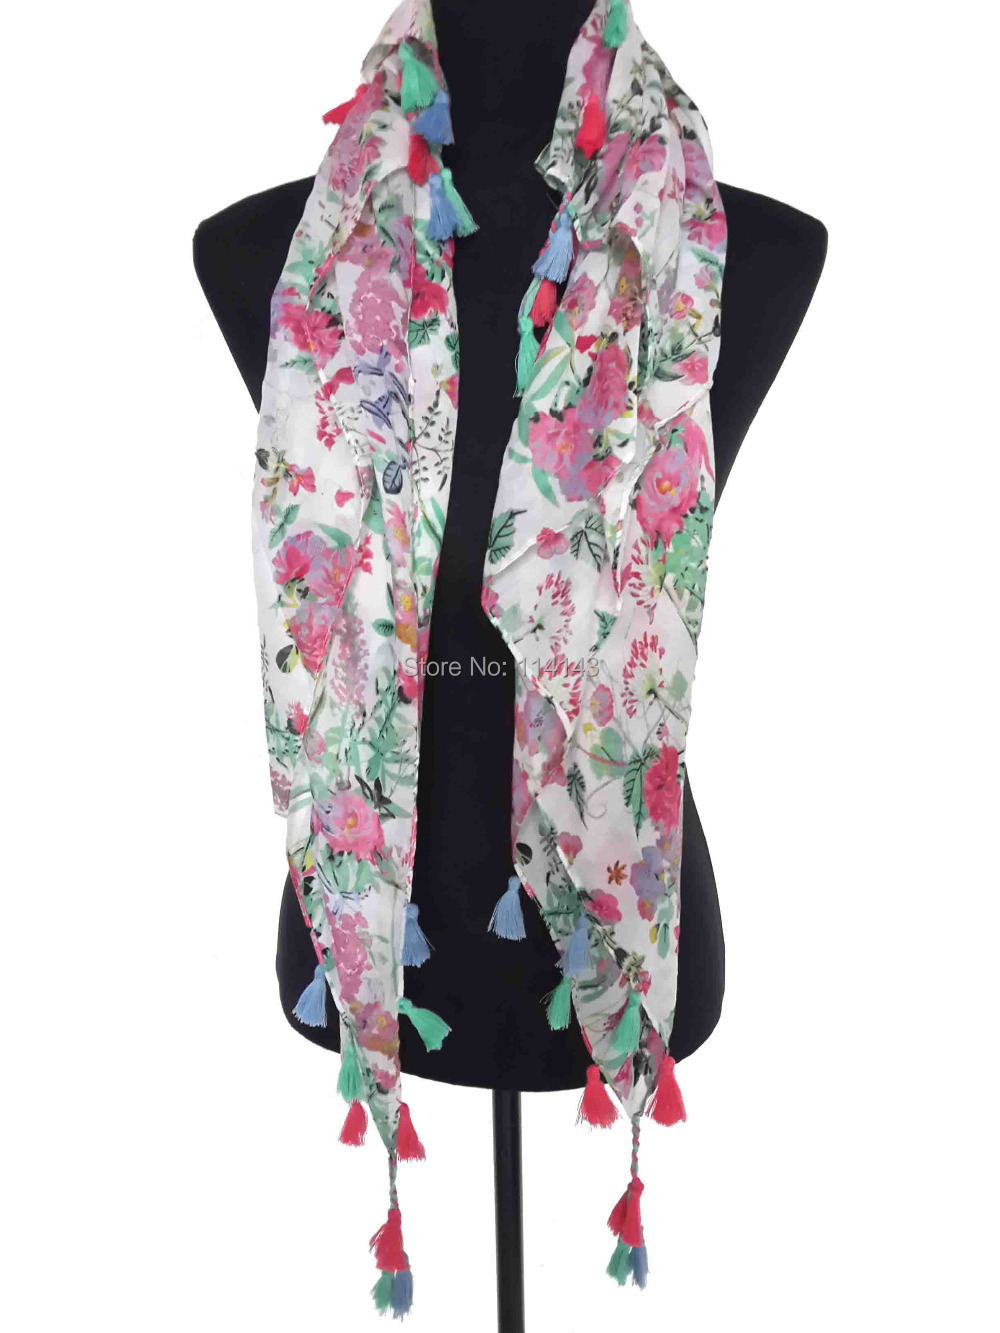 10pcs/lot Floral Flower Print Tassel Scarf Wrap Women's Accessories, Free Shipping